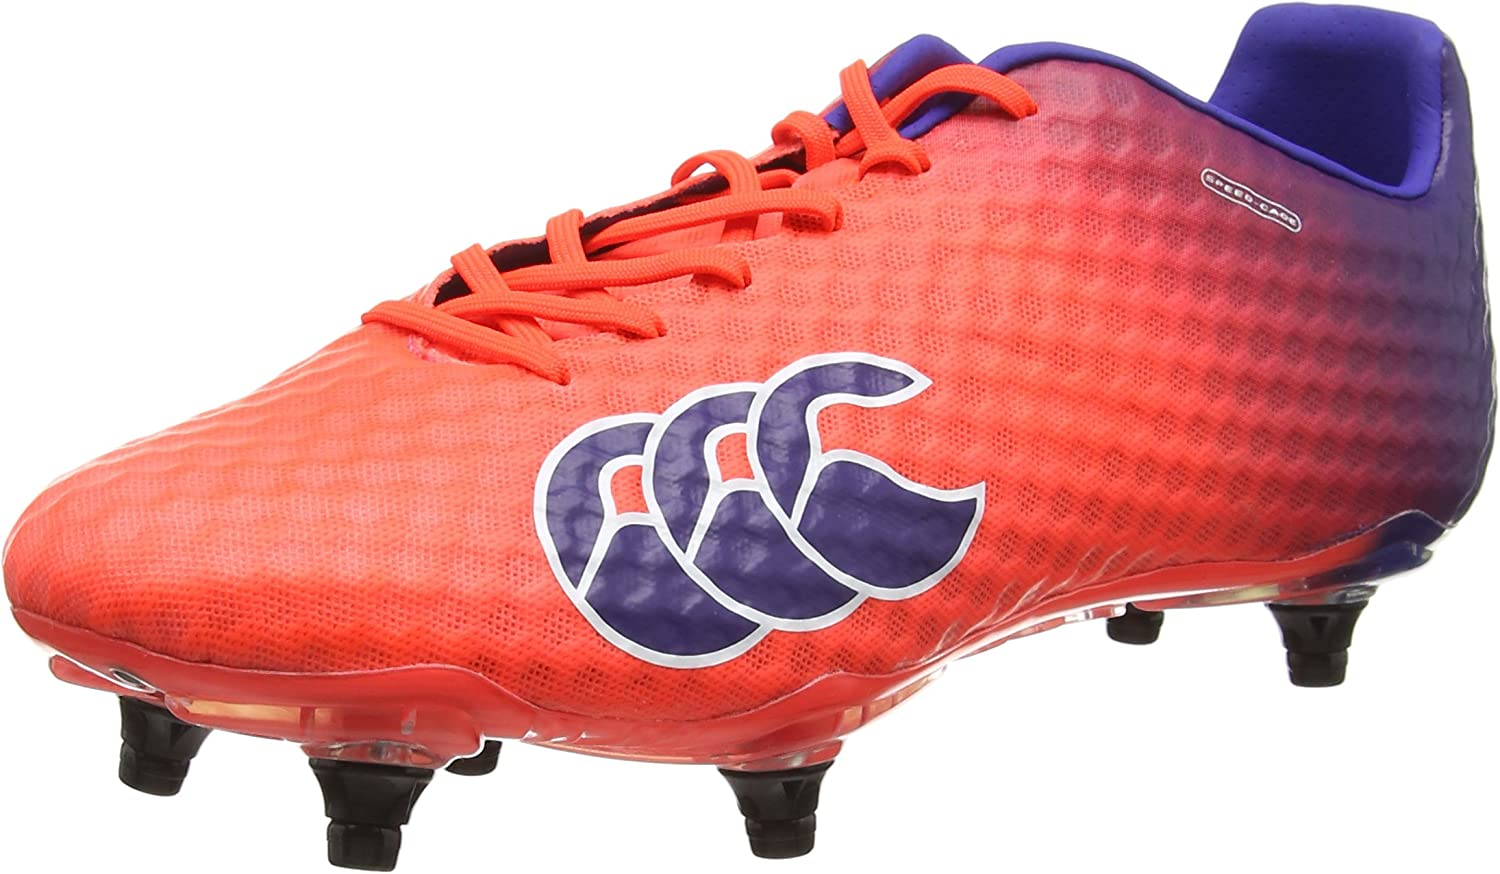 Gifts Canterbury Speed Courier shipping free Elite 6 Stud Orange Purple Boots Rugby